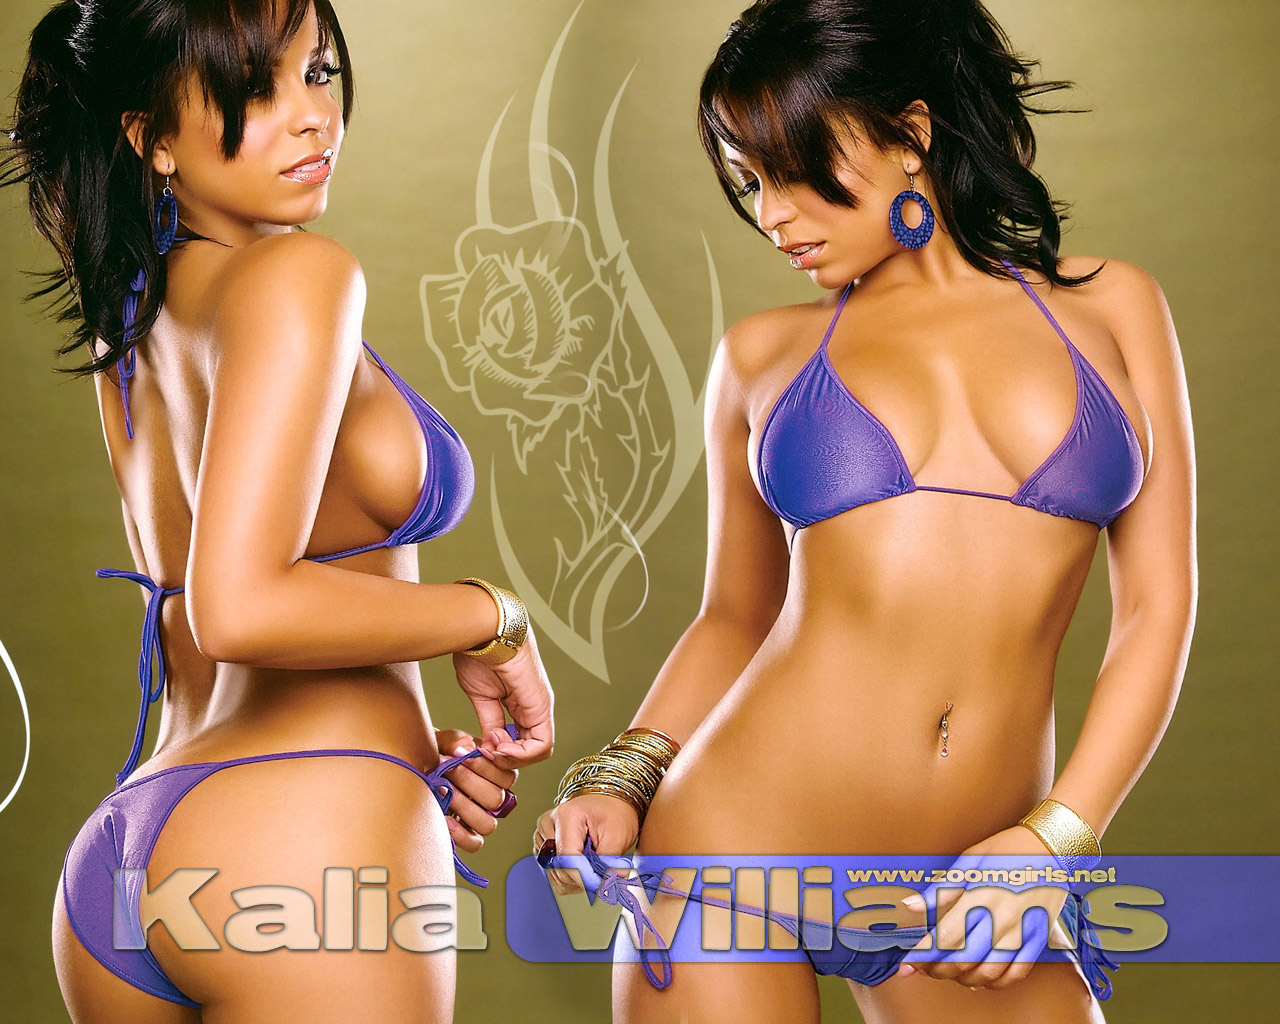 Hot_kalia_williams_wallpapers